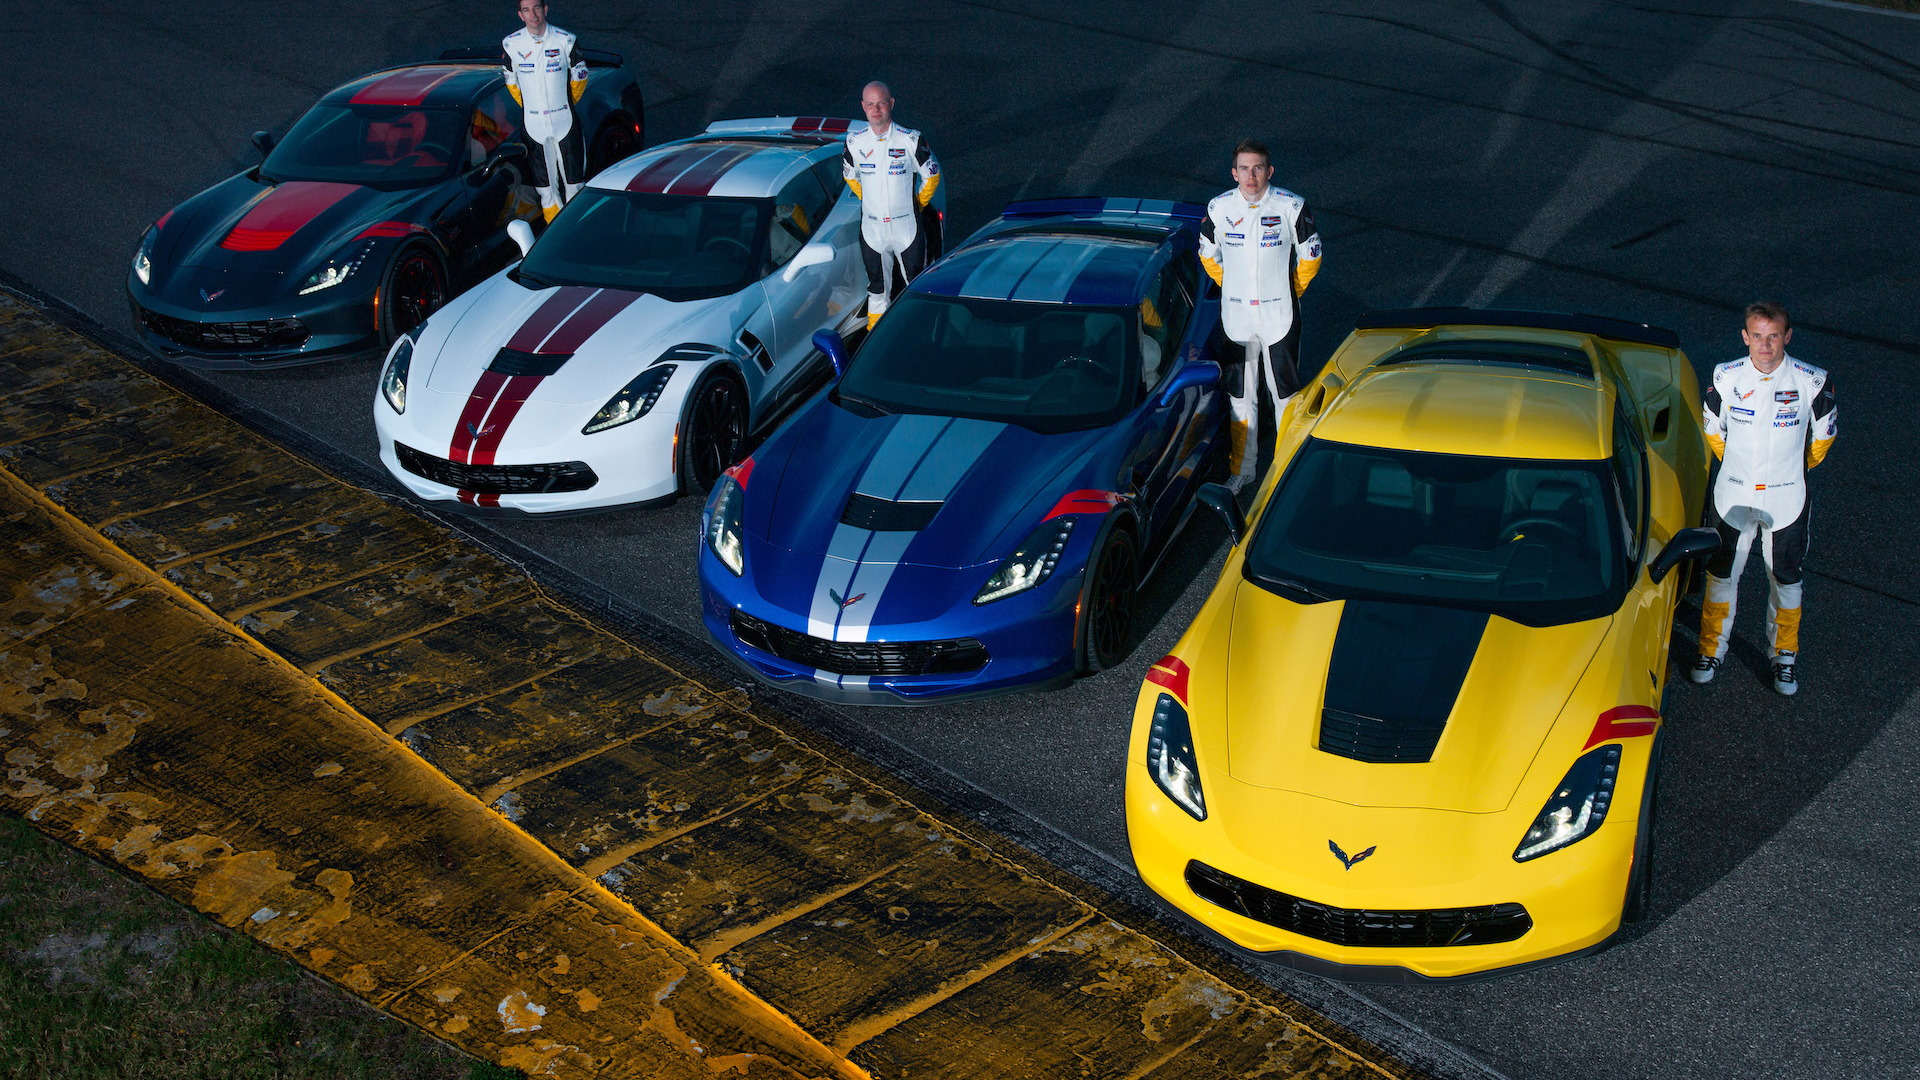 2019 Chevrolet Corvette Drivers Series special editions